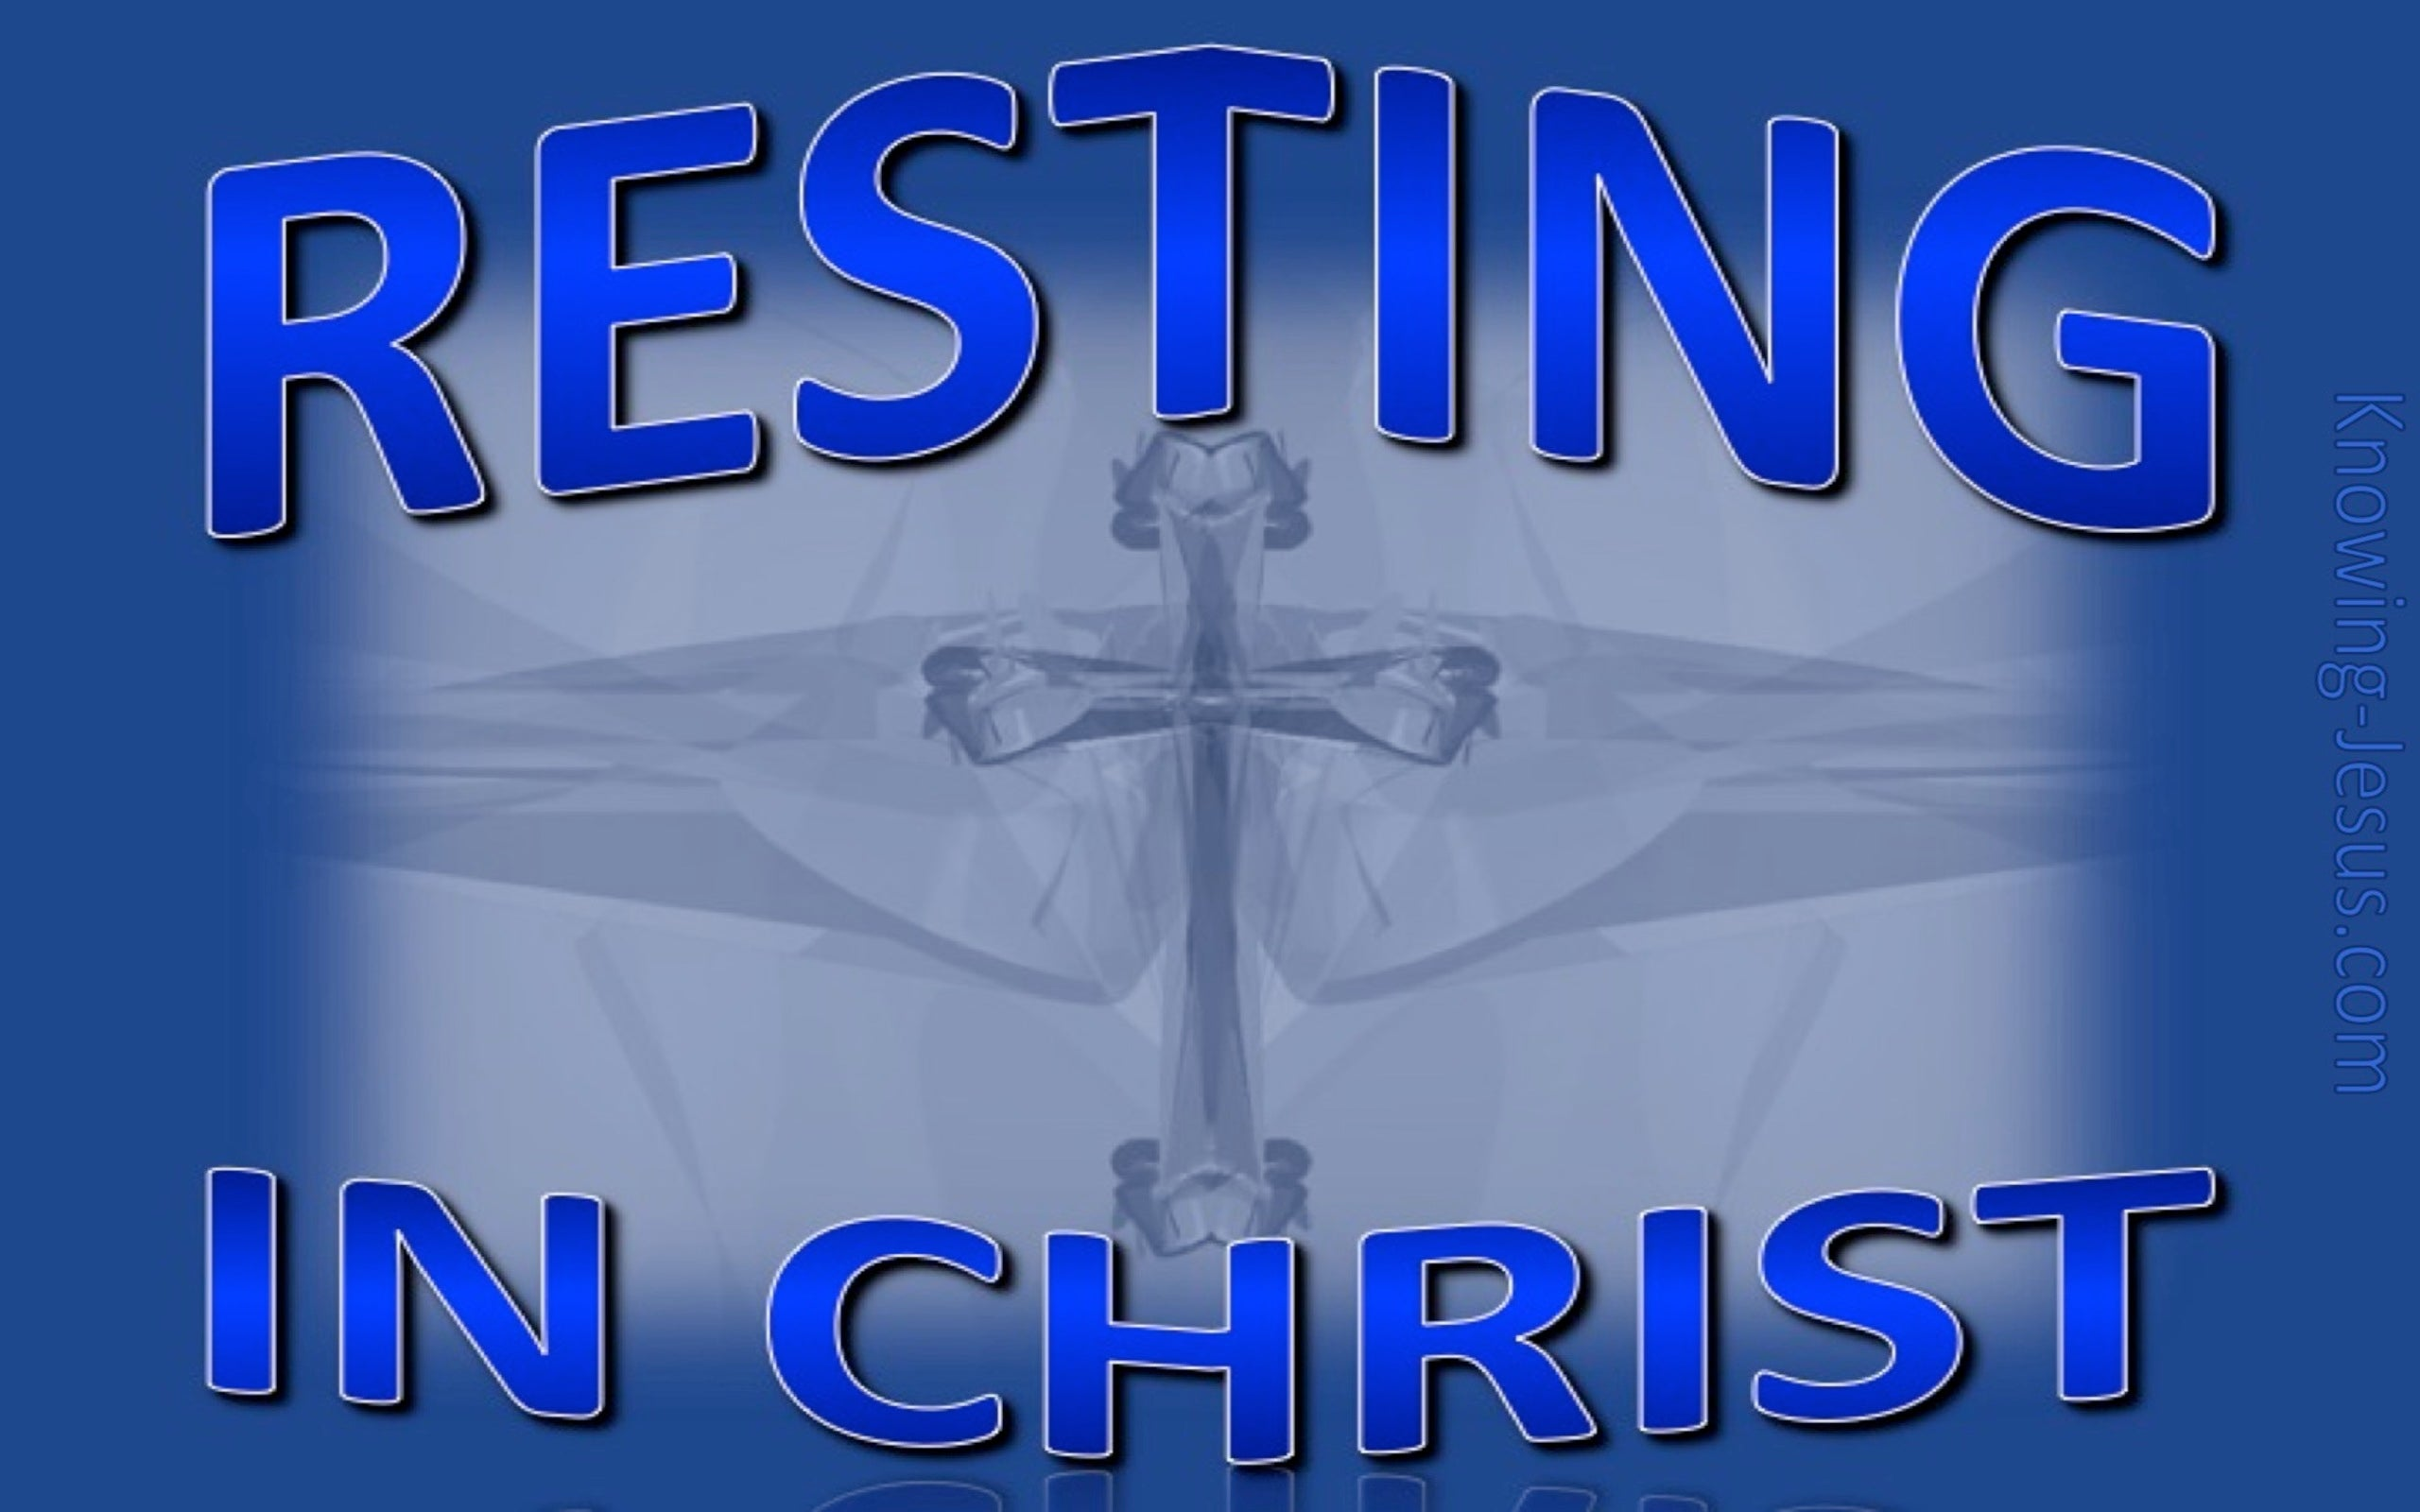 Resting In Christ (blue)